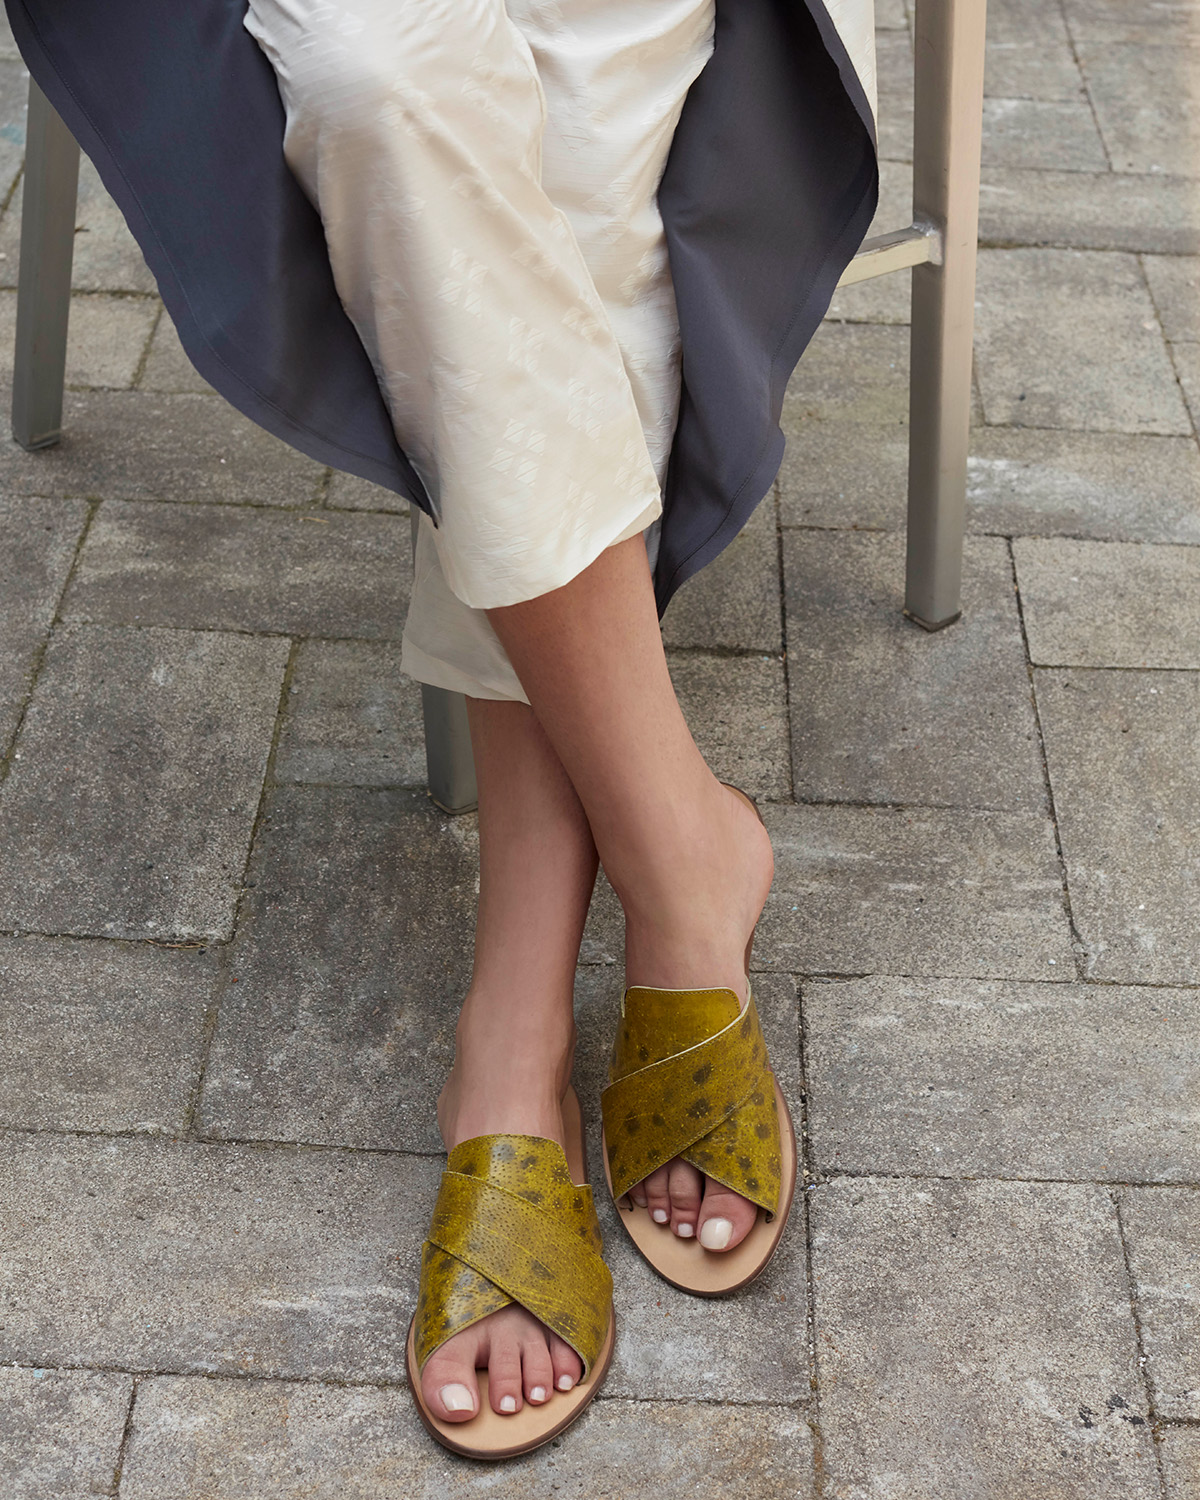 Bav Tailor wearing featured product sandals